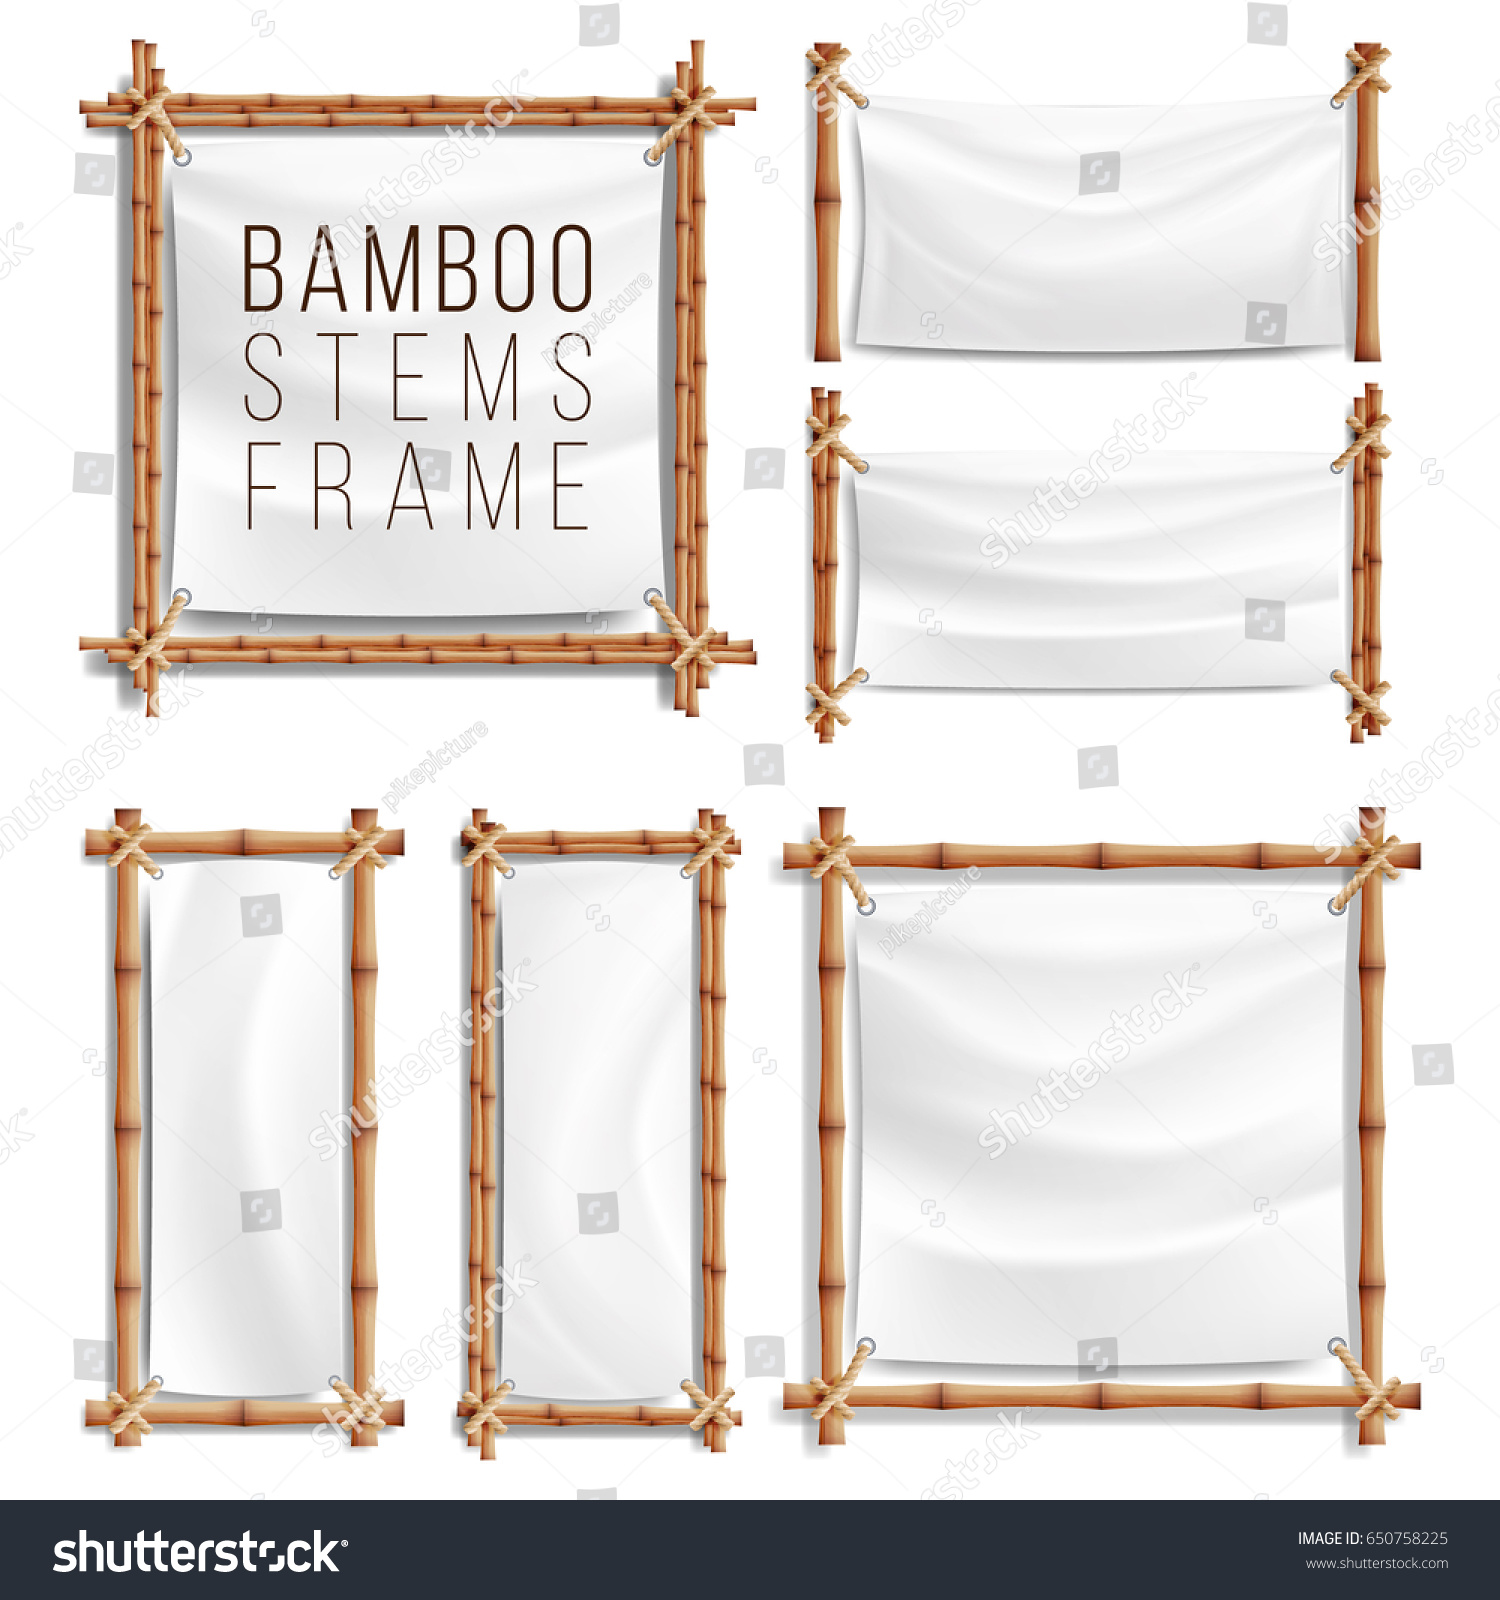 Wood frames set free vector - Bamboo Frame Set Vector With Canvas Wooden Frame Of Bamboo Sticks Swathed In Rope